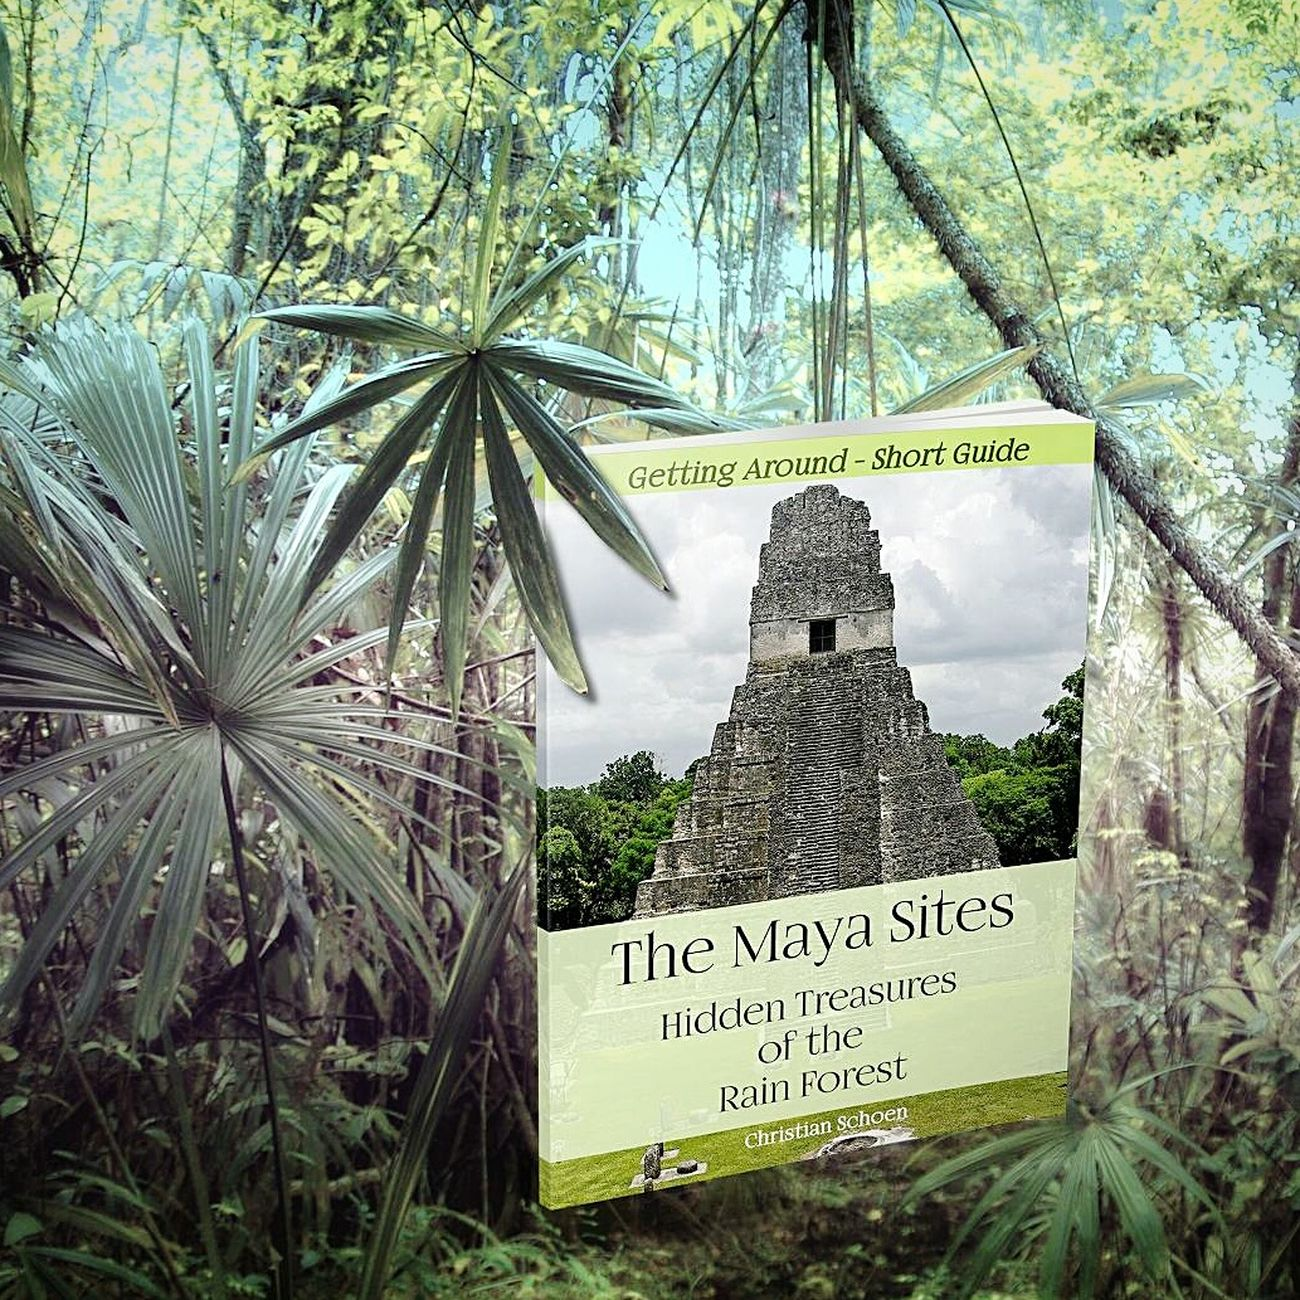 buch book ebook Mayan Ruins Mayan Riviera The Architect - 2017 EyeEm Awards The Great Outdoors http://amzn.to/2cywyAK Live for the Story tropical